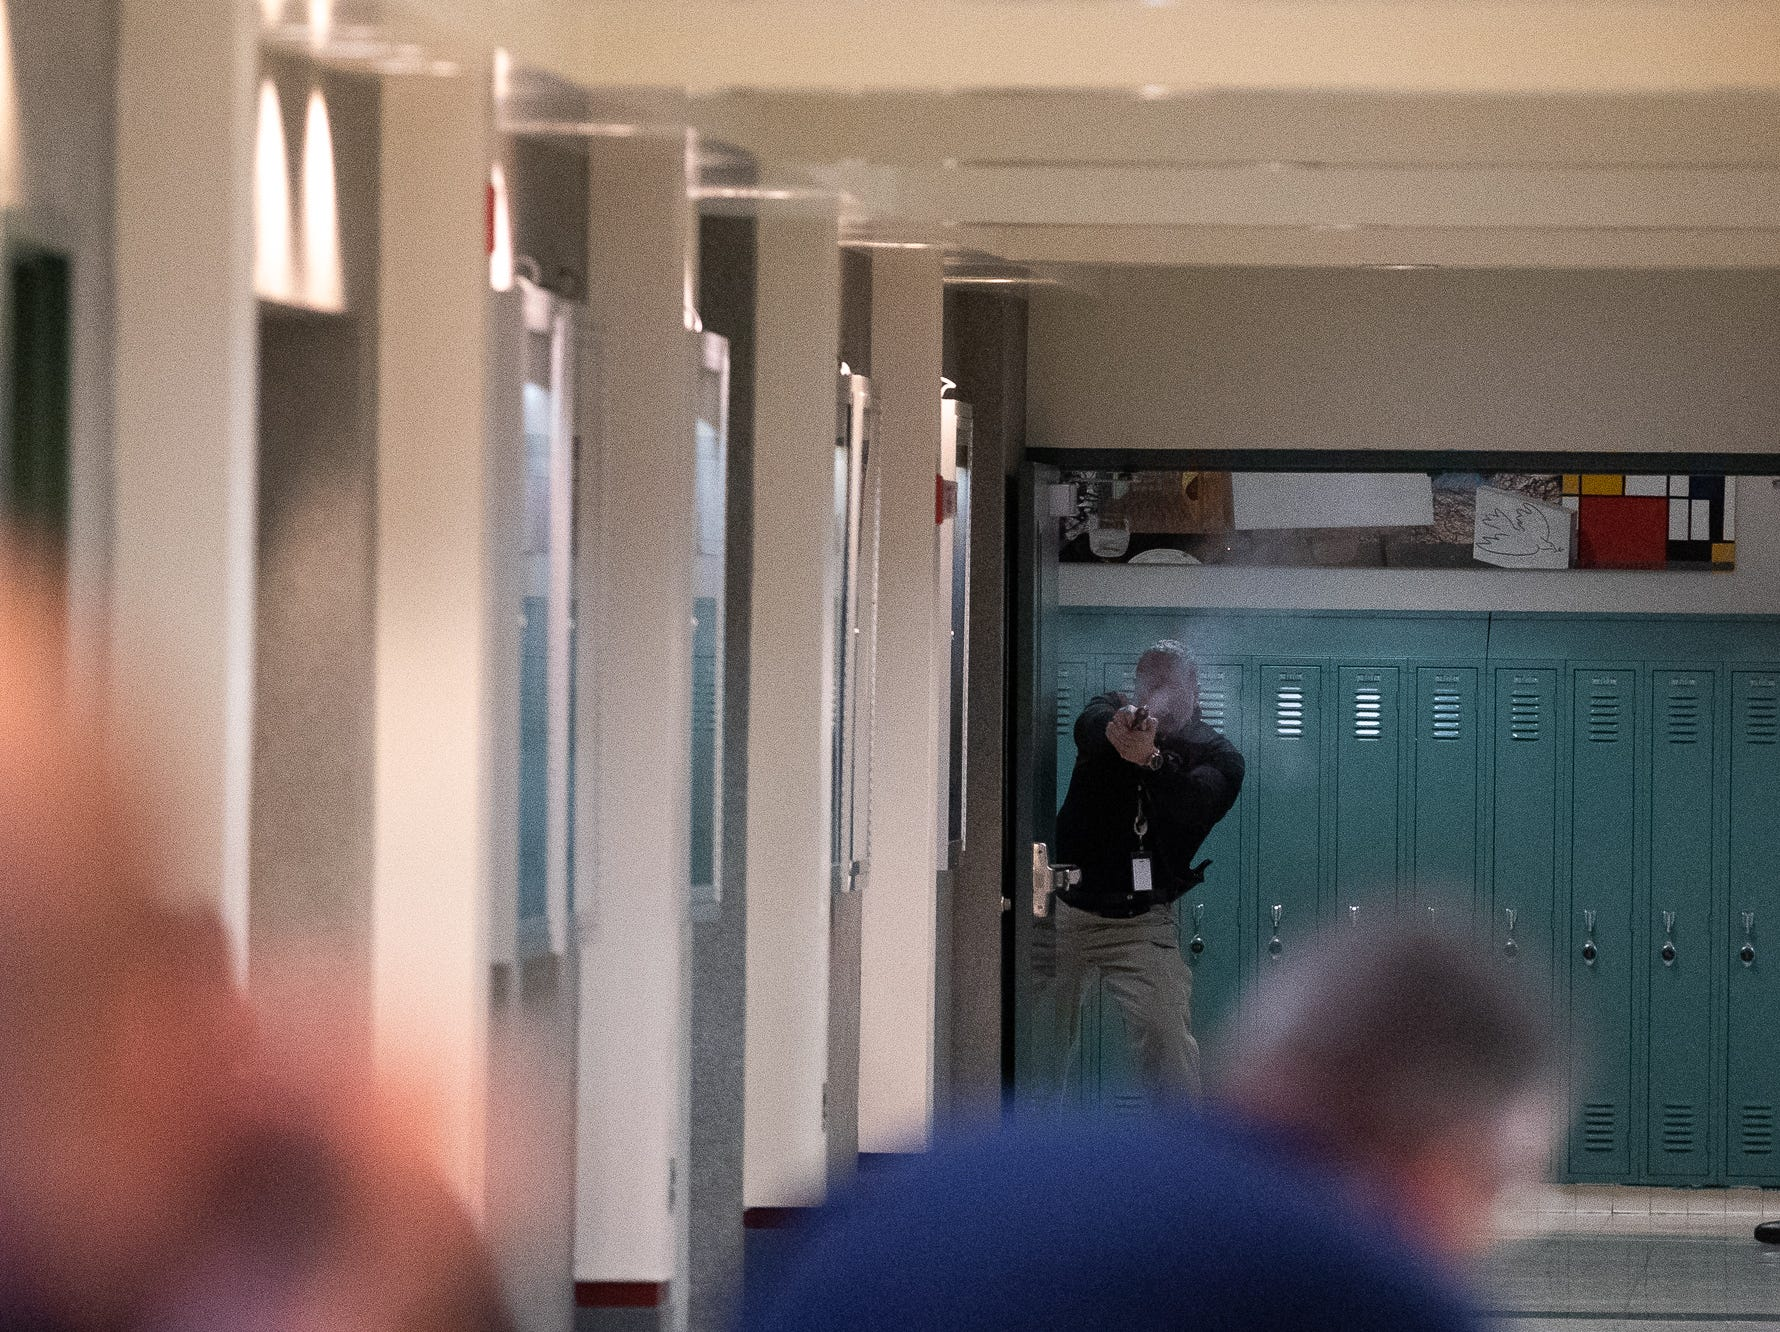 A school security guard opens fire and takes down a man portraying an active shooter during an active shooter drill at South Western High School, Monday, Jan. 21, 2019, in Penn Township. The drill simulated multiple scenarios involving an active shooter, allowing school security and local law enforcement agencies a hands-on opportunity to drill on engaging an active shooter while also giving school staff experience with how real world scenarios could unfold.